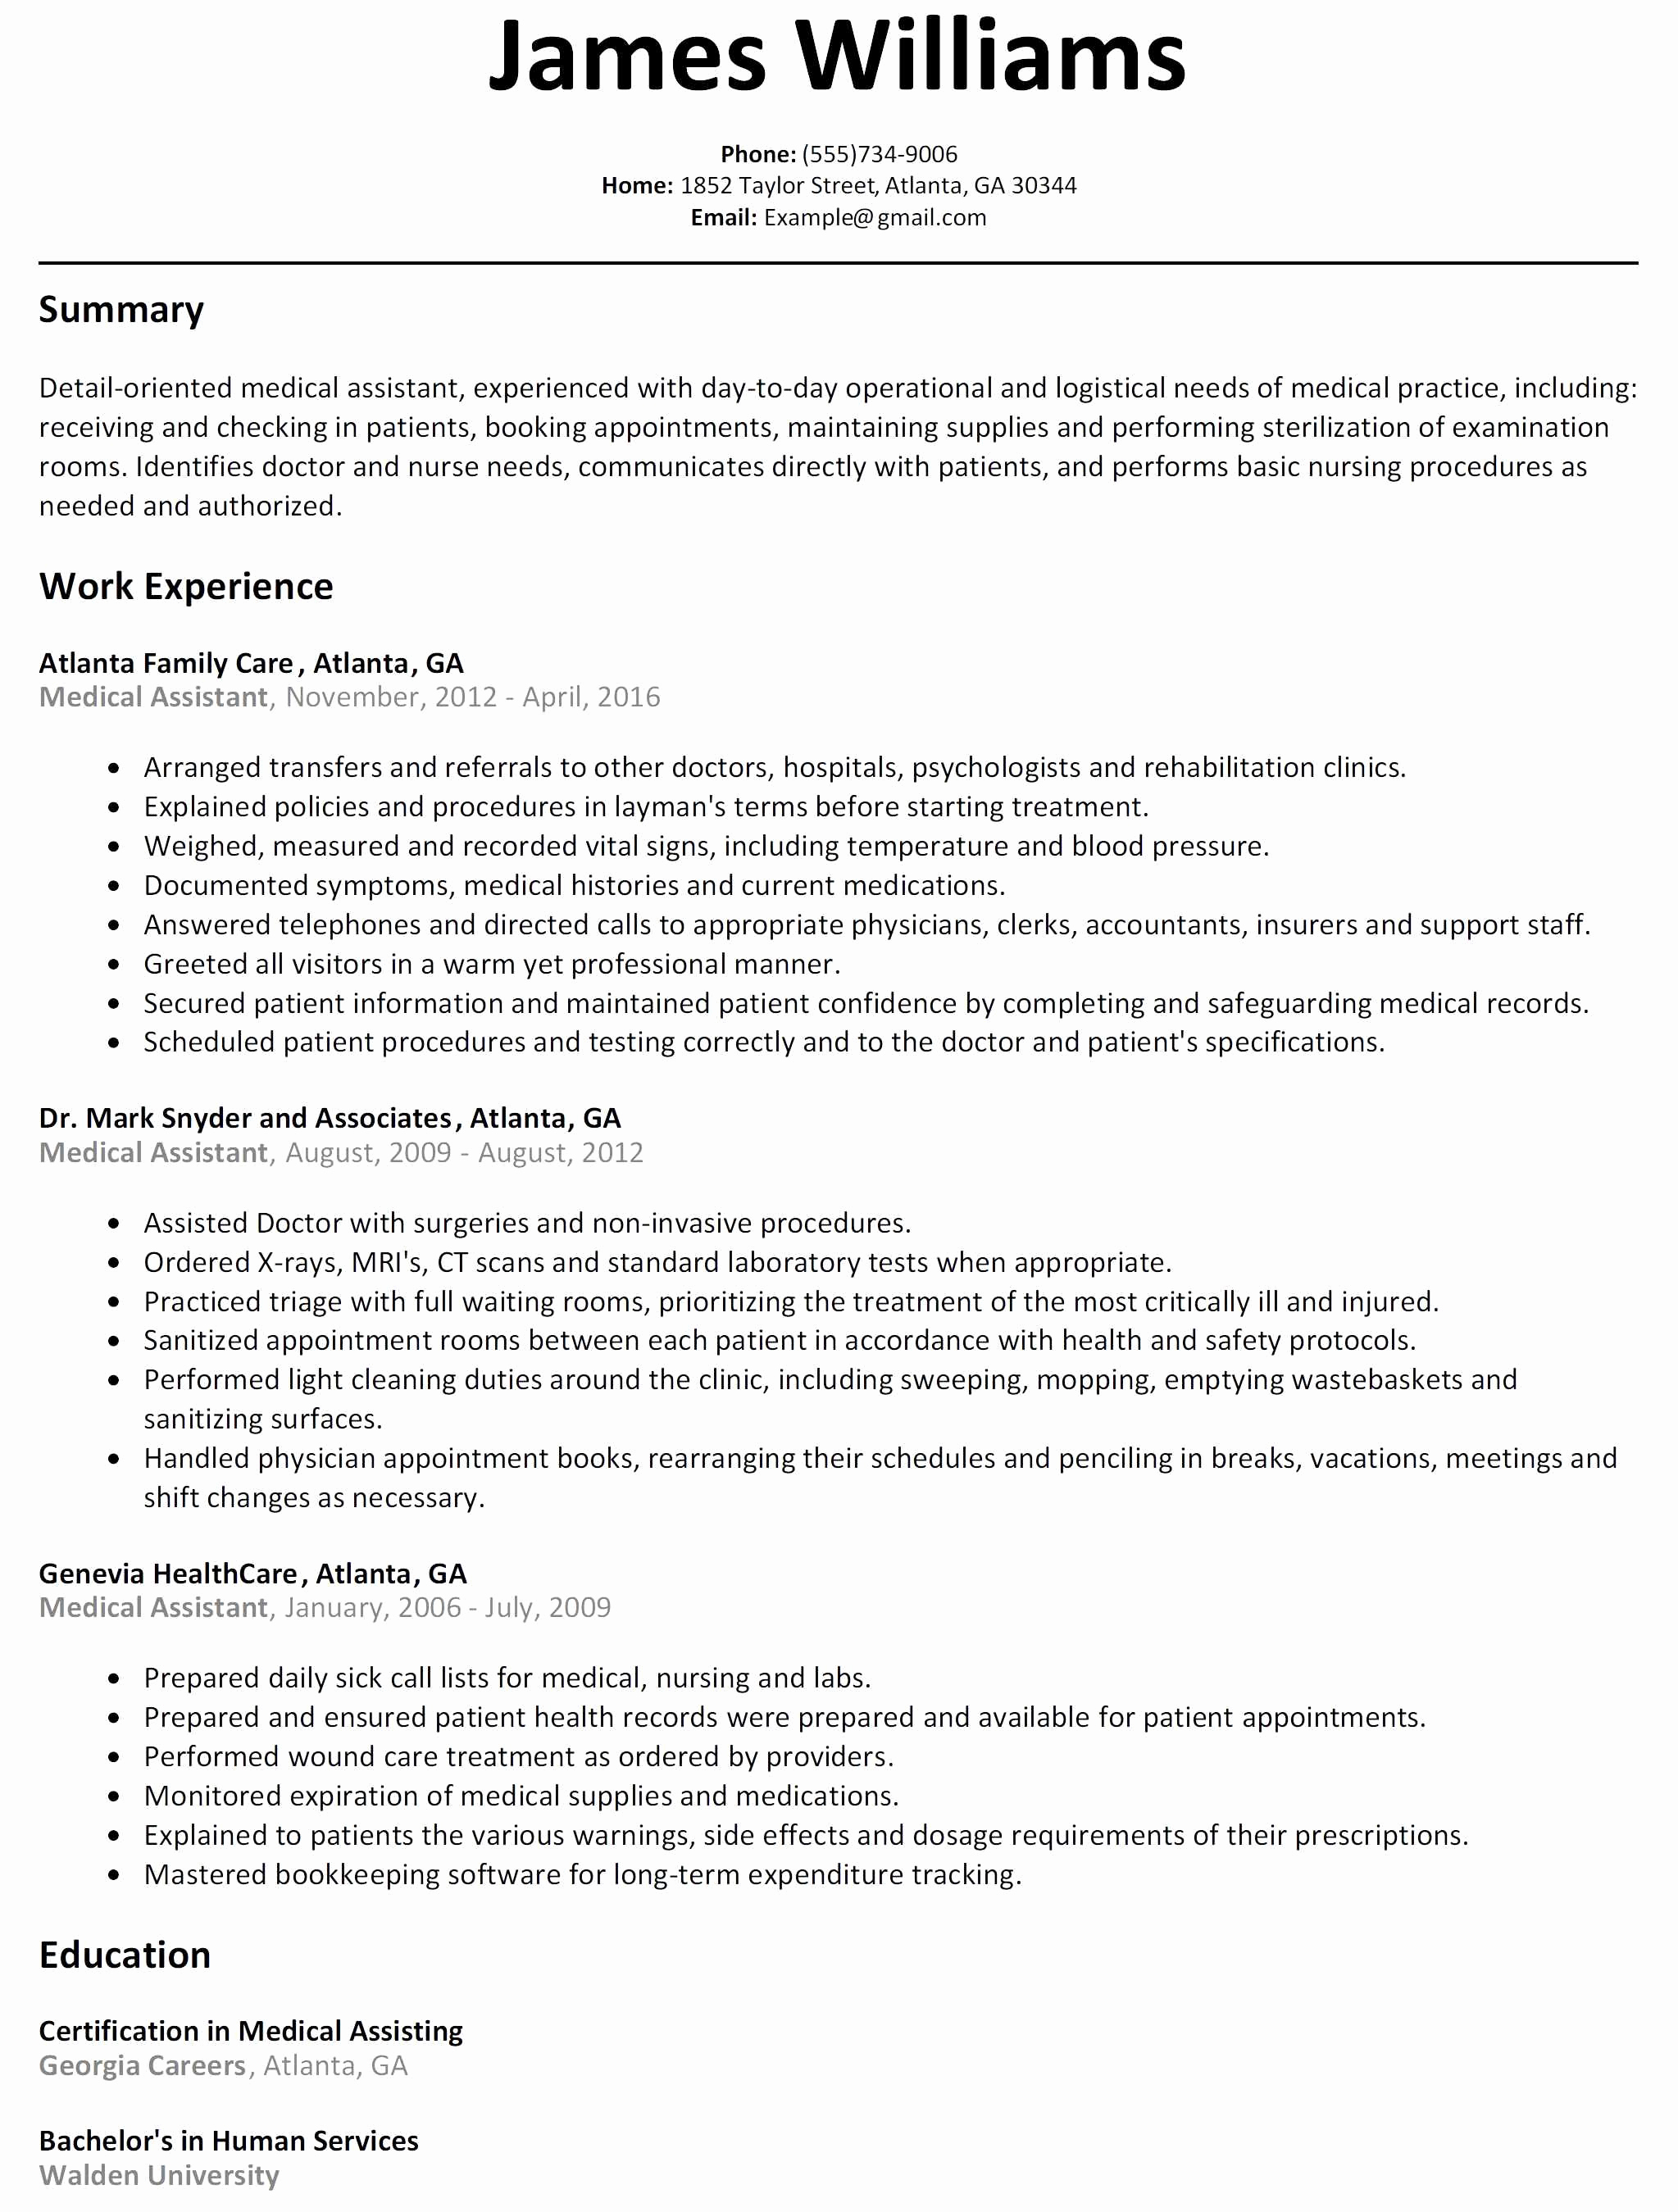 High School Resume Builder Best Of School Resume Builder Professional Template Law Medical